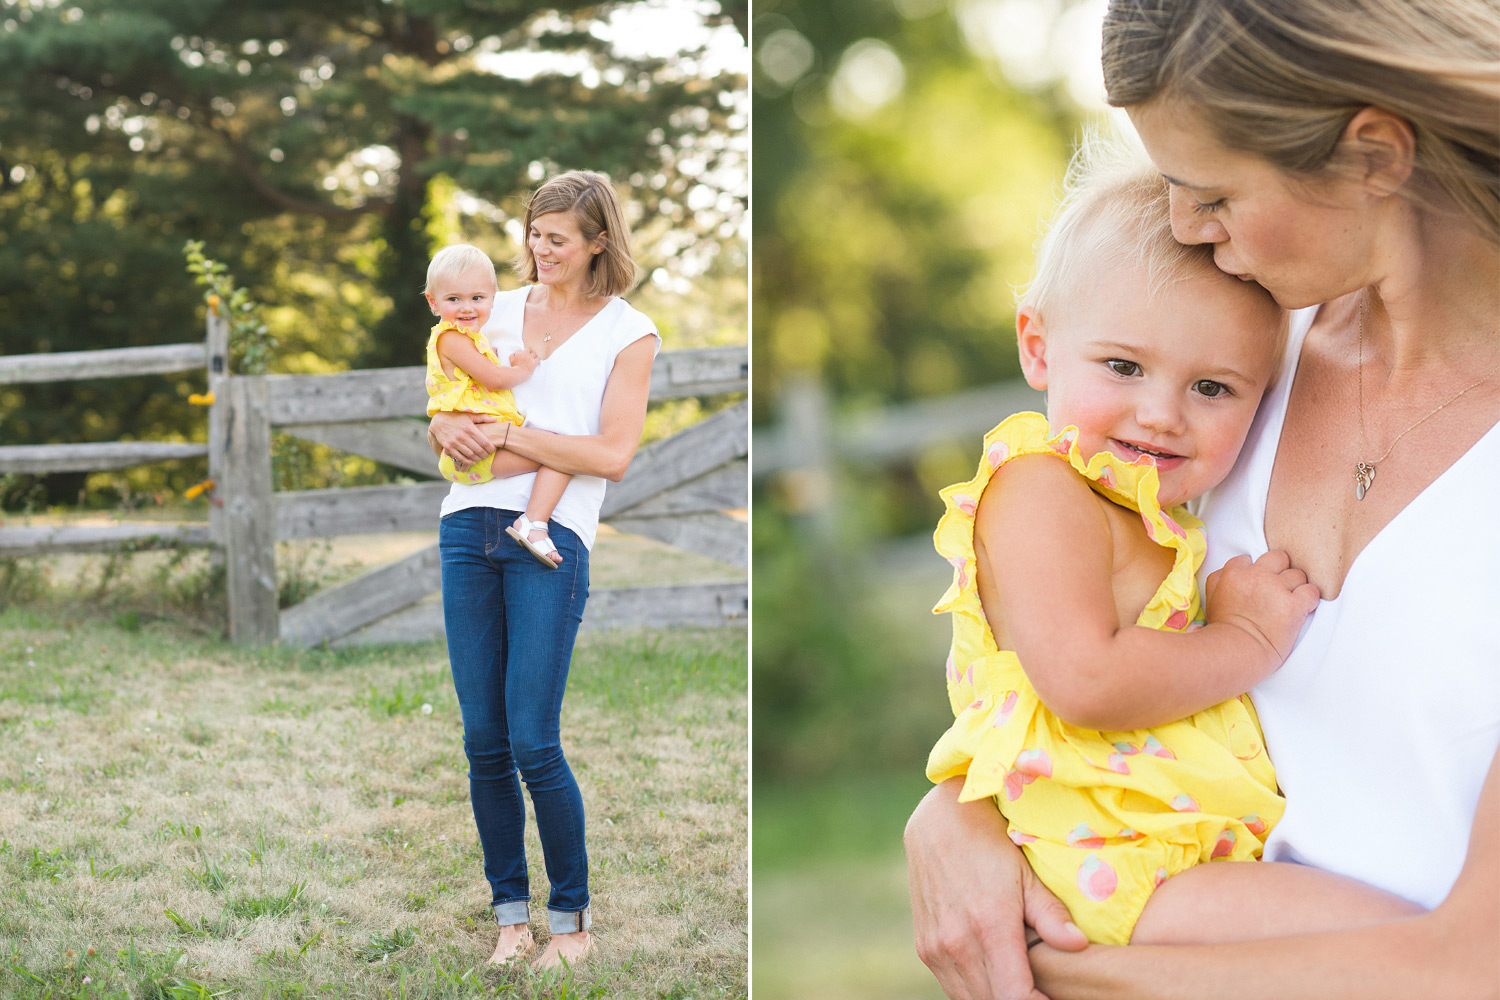 summer-orchard-family-photo-session-boston-5